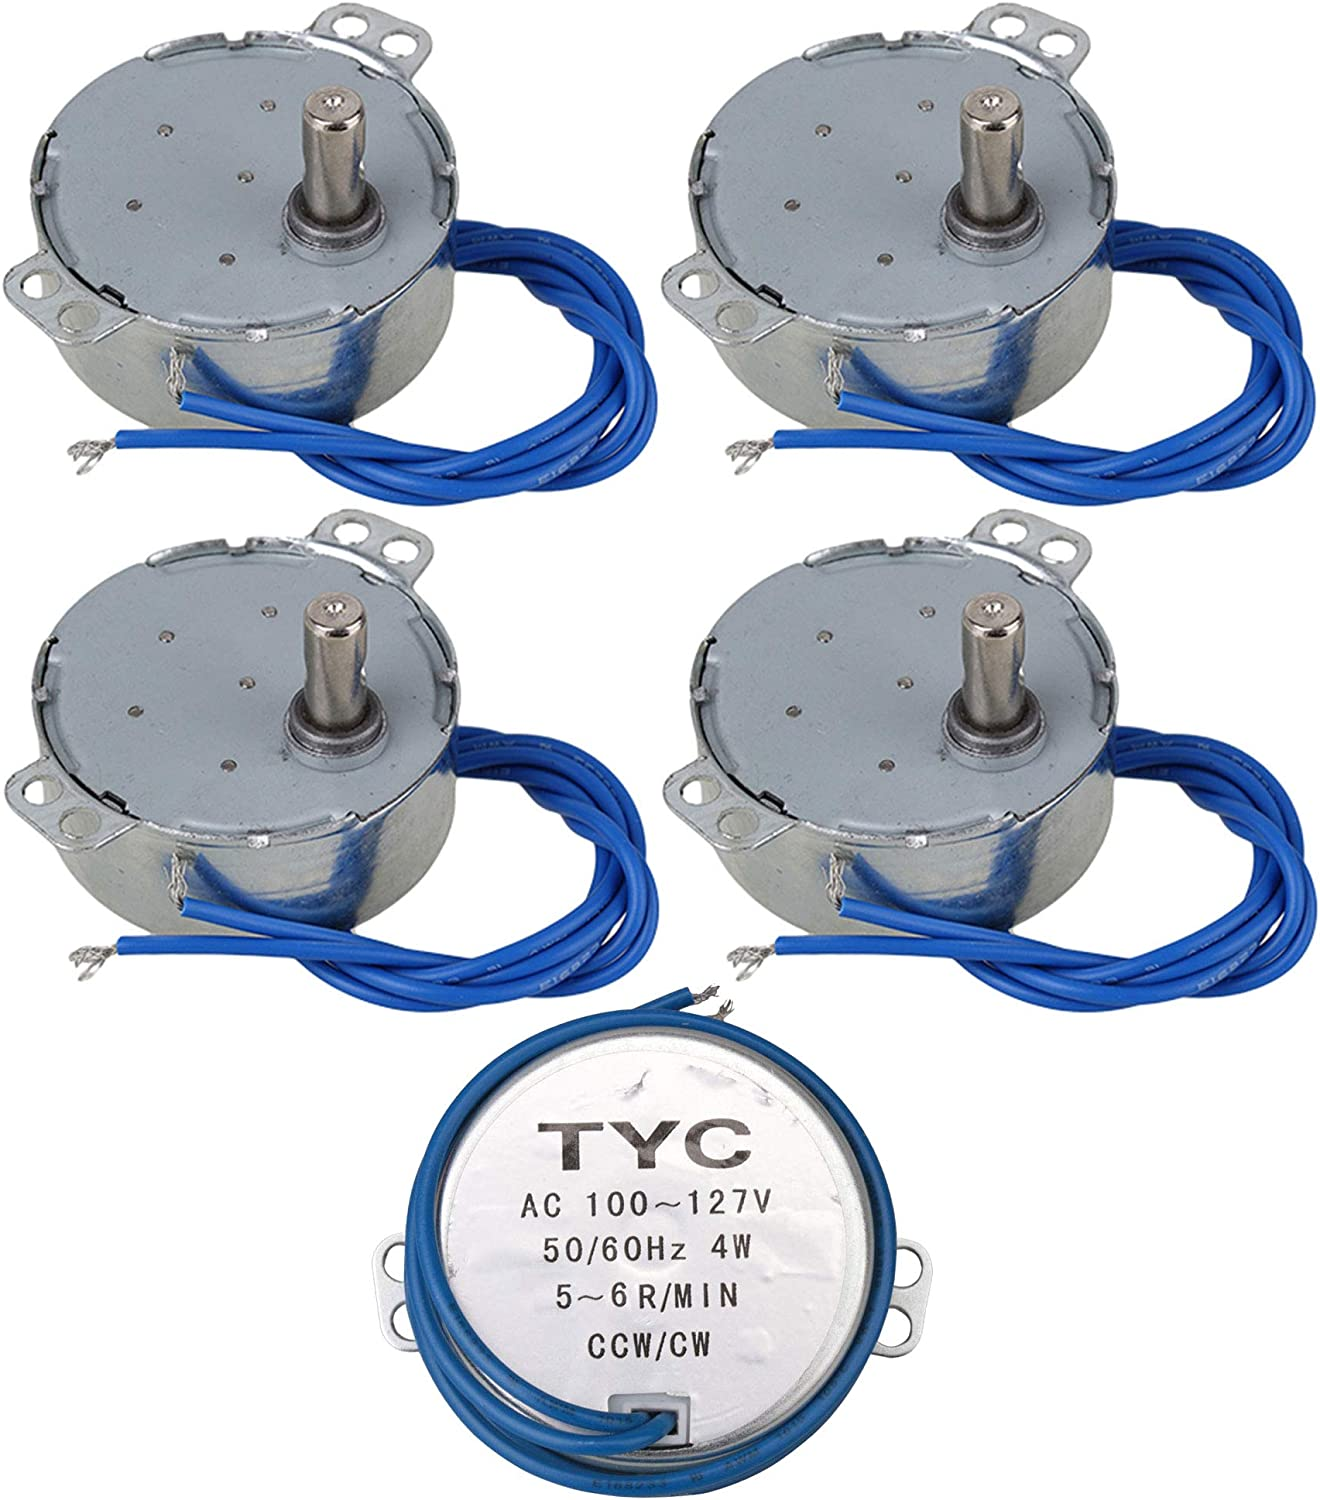 AC110V TYC-50 Non-Directional Synchronous Motor 5-6rpm Pack of 10